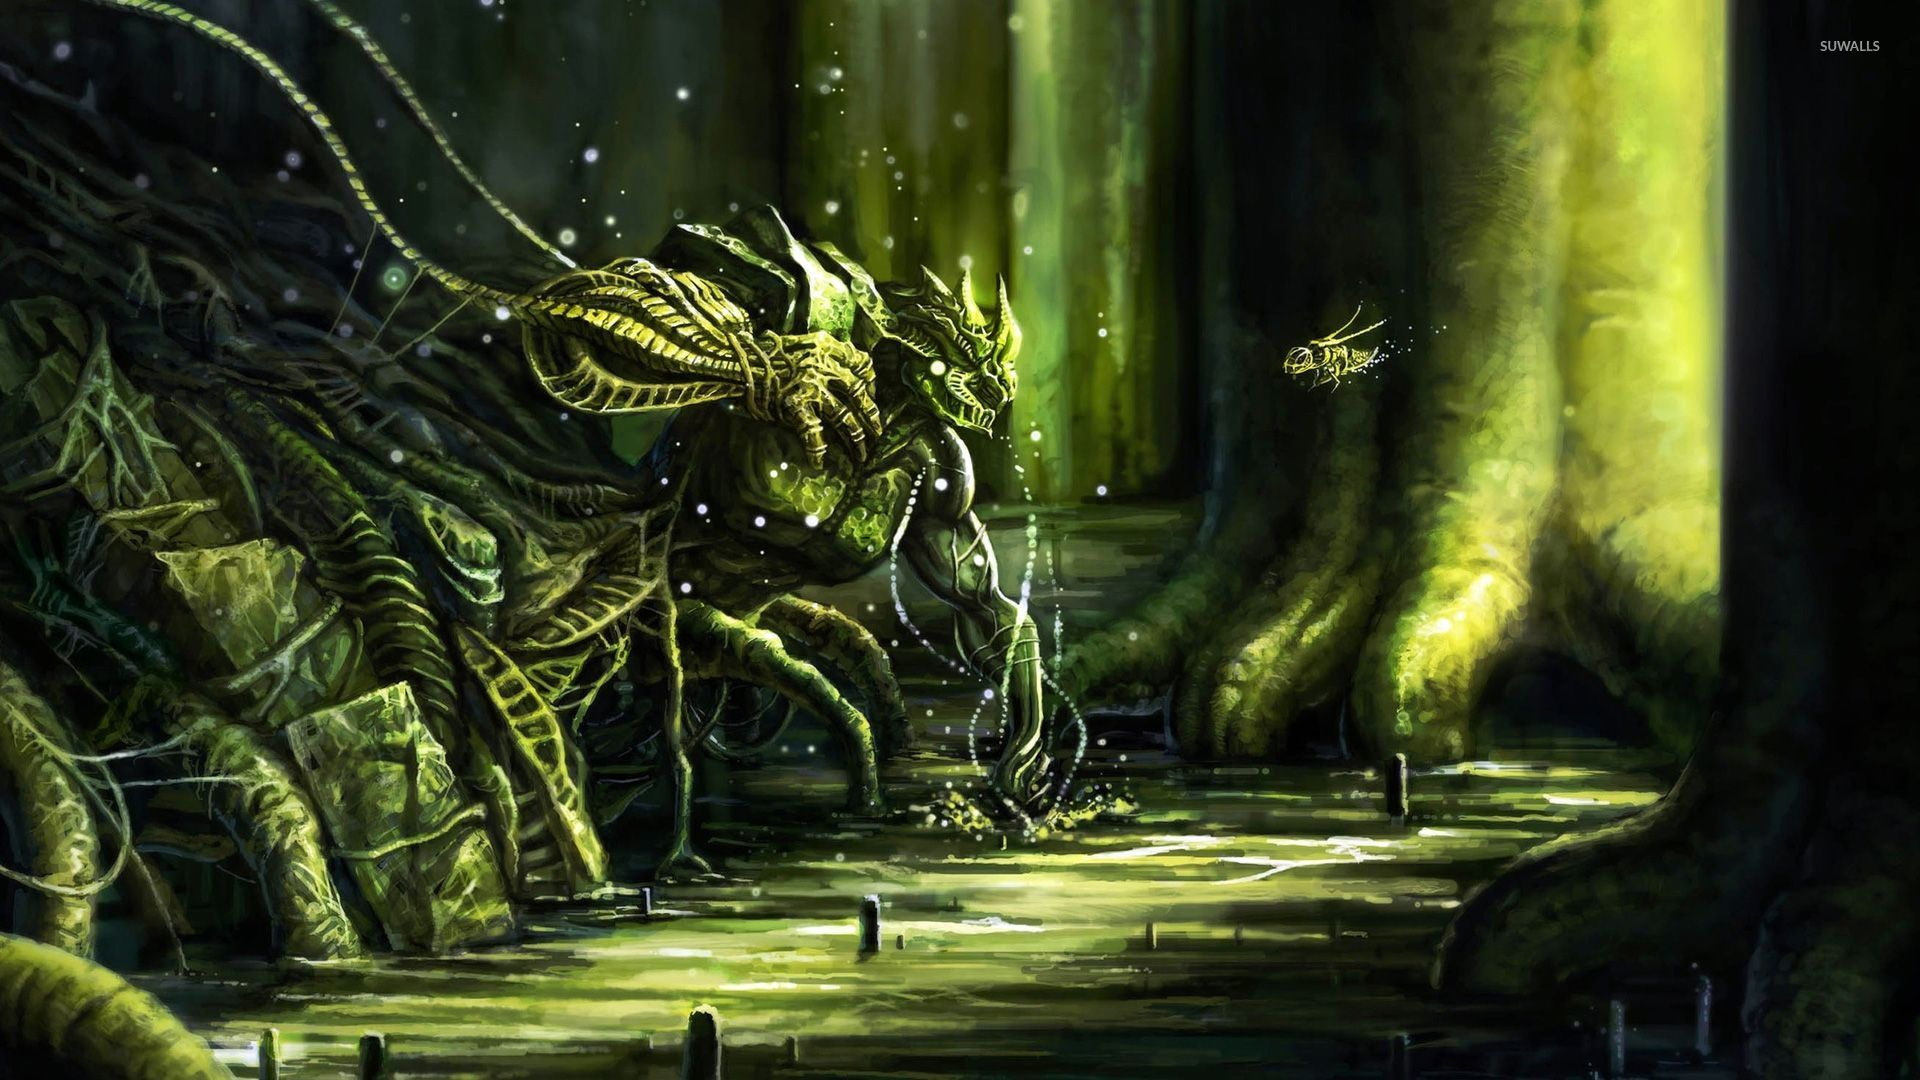 Insect matriarch final fantasy wallpaper game wallpapers 25944 insect matriarch final fantasy wallpaper voltagebd Gallery